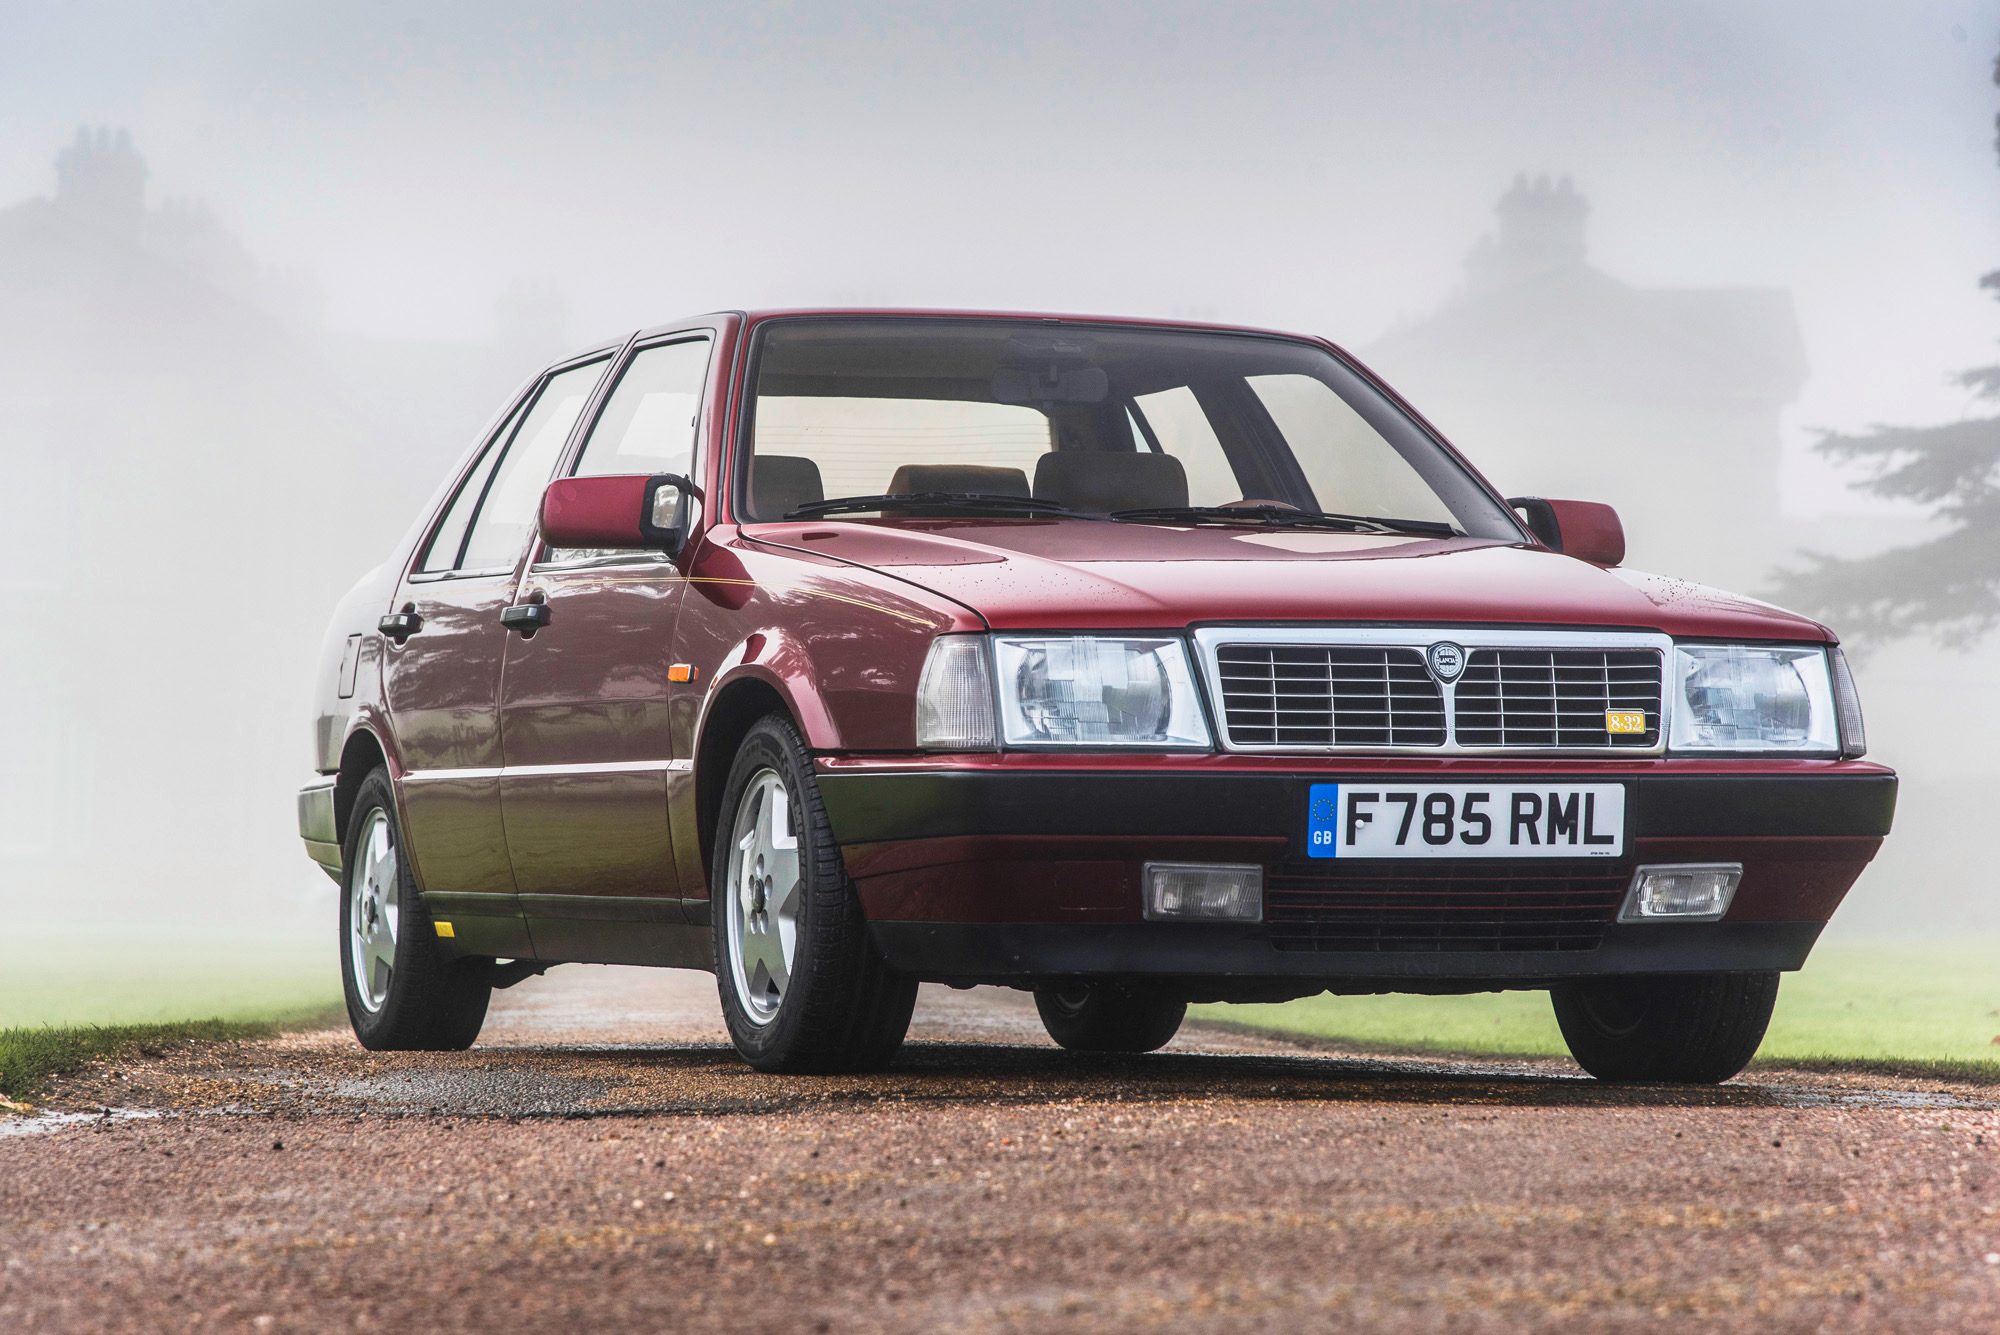 , Rowan Atkinson consigns a pair of cars to Silverstone Auctions, ClassicCars.com Journal